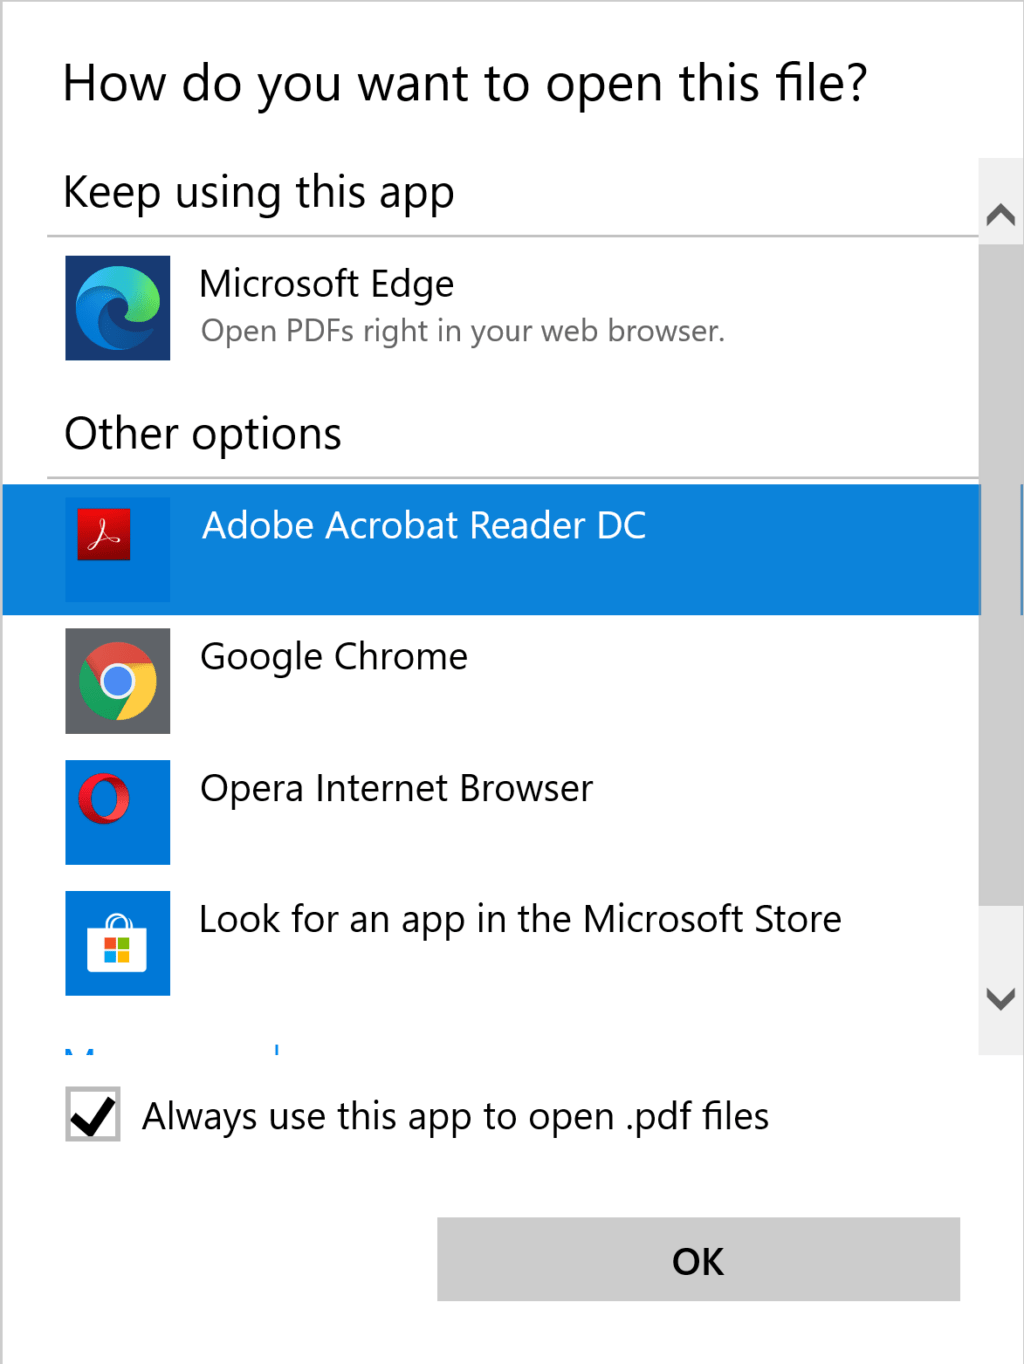 Always Use This App to Open .PDF Files